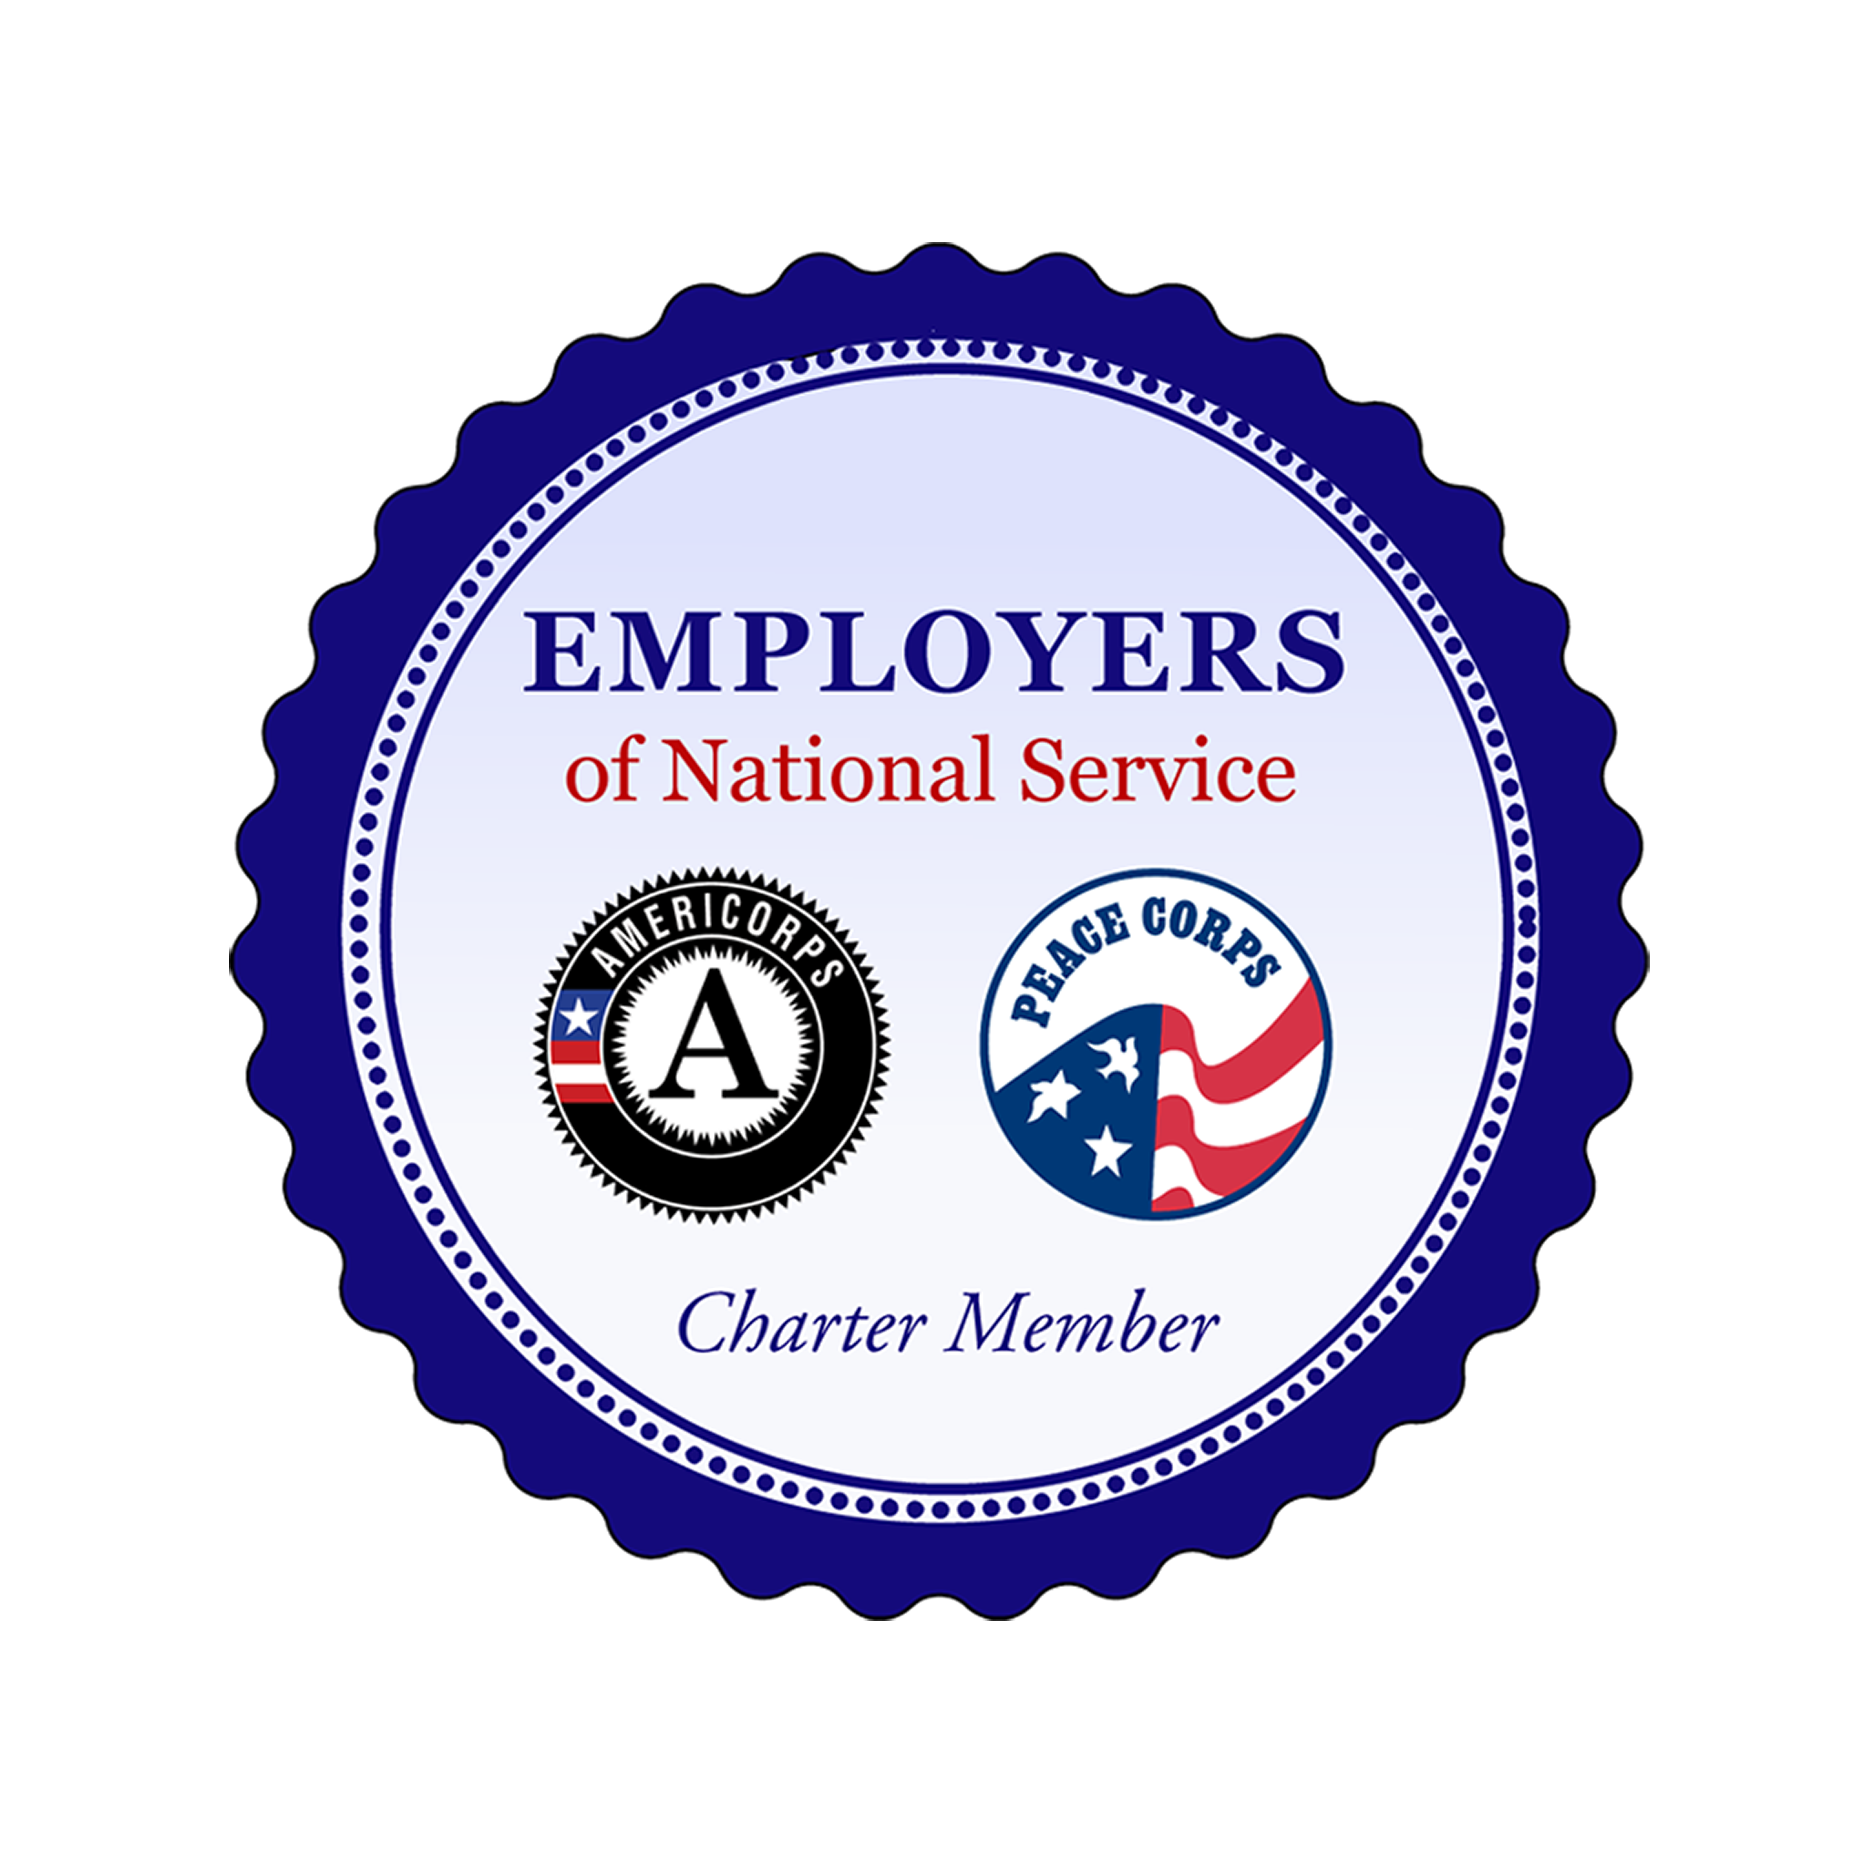 Employers_of_National_Service_Charter_Member_Badge II.png